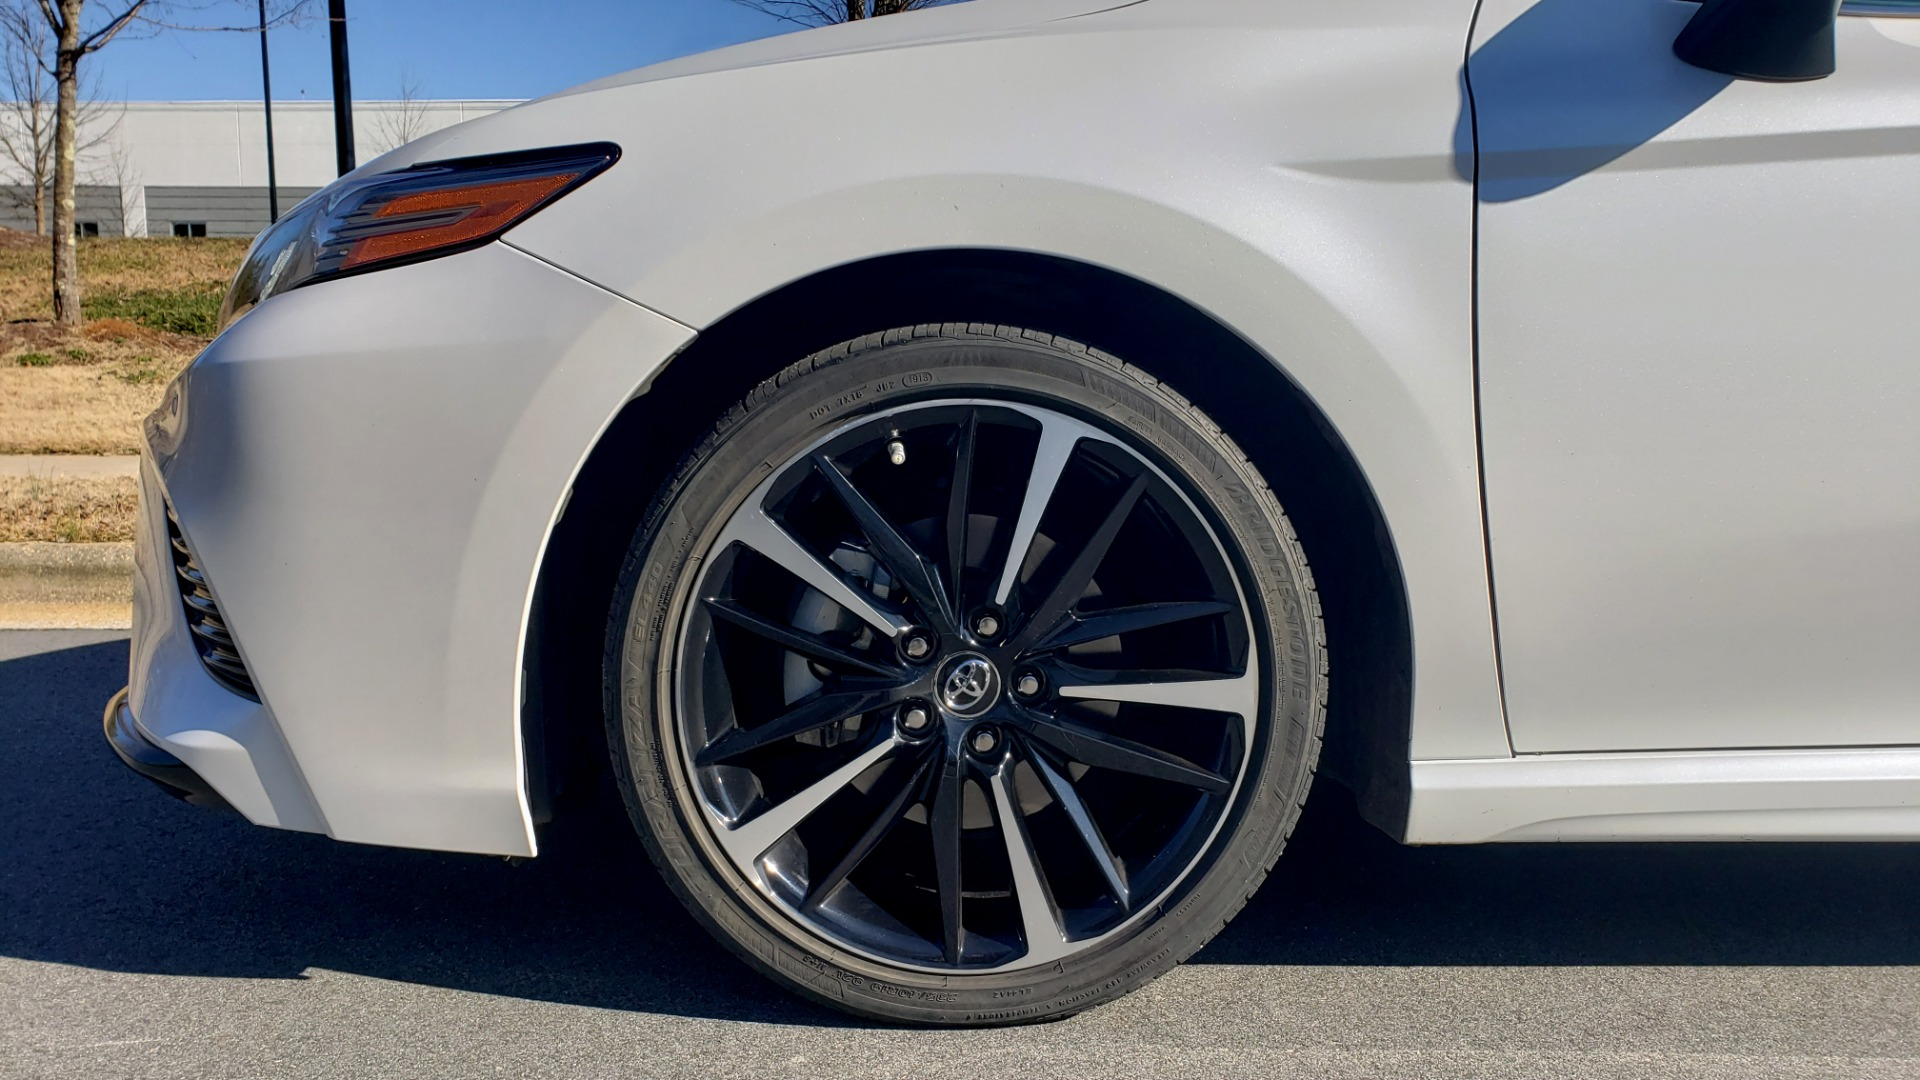 Used 2018 Toyota CAMRY XSE 2.5L SEDAN / 8-SPD AUTO / PANO-ROOF / 19IN WHEELS for sale $22,995 at Formula Imports in Charlotte NC 28227 77